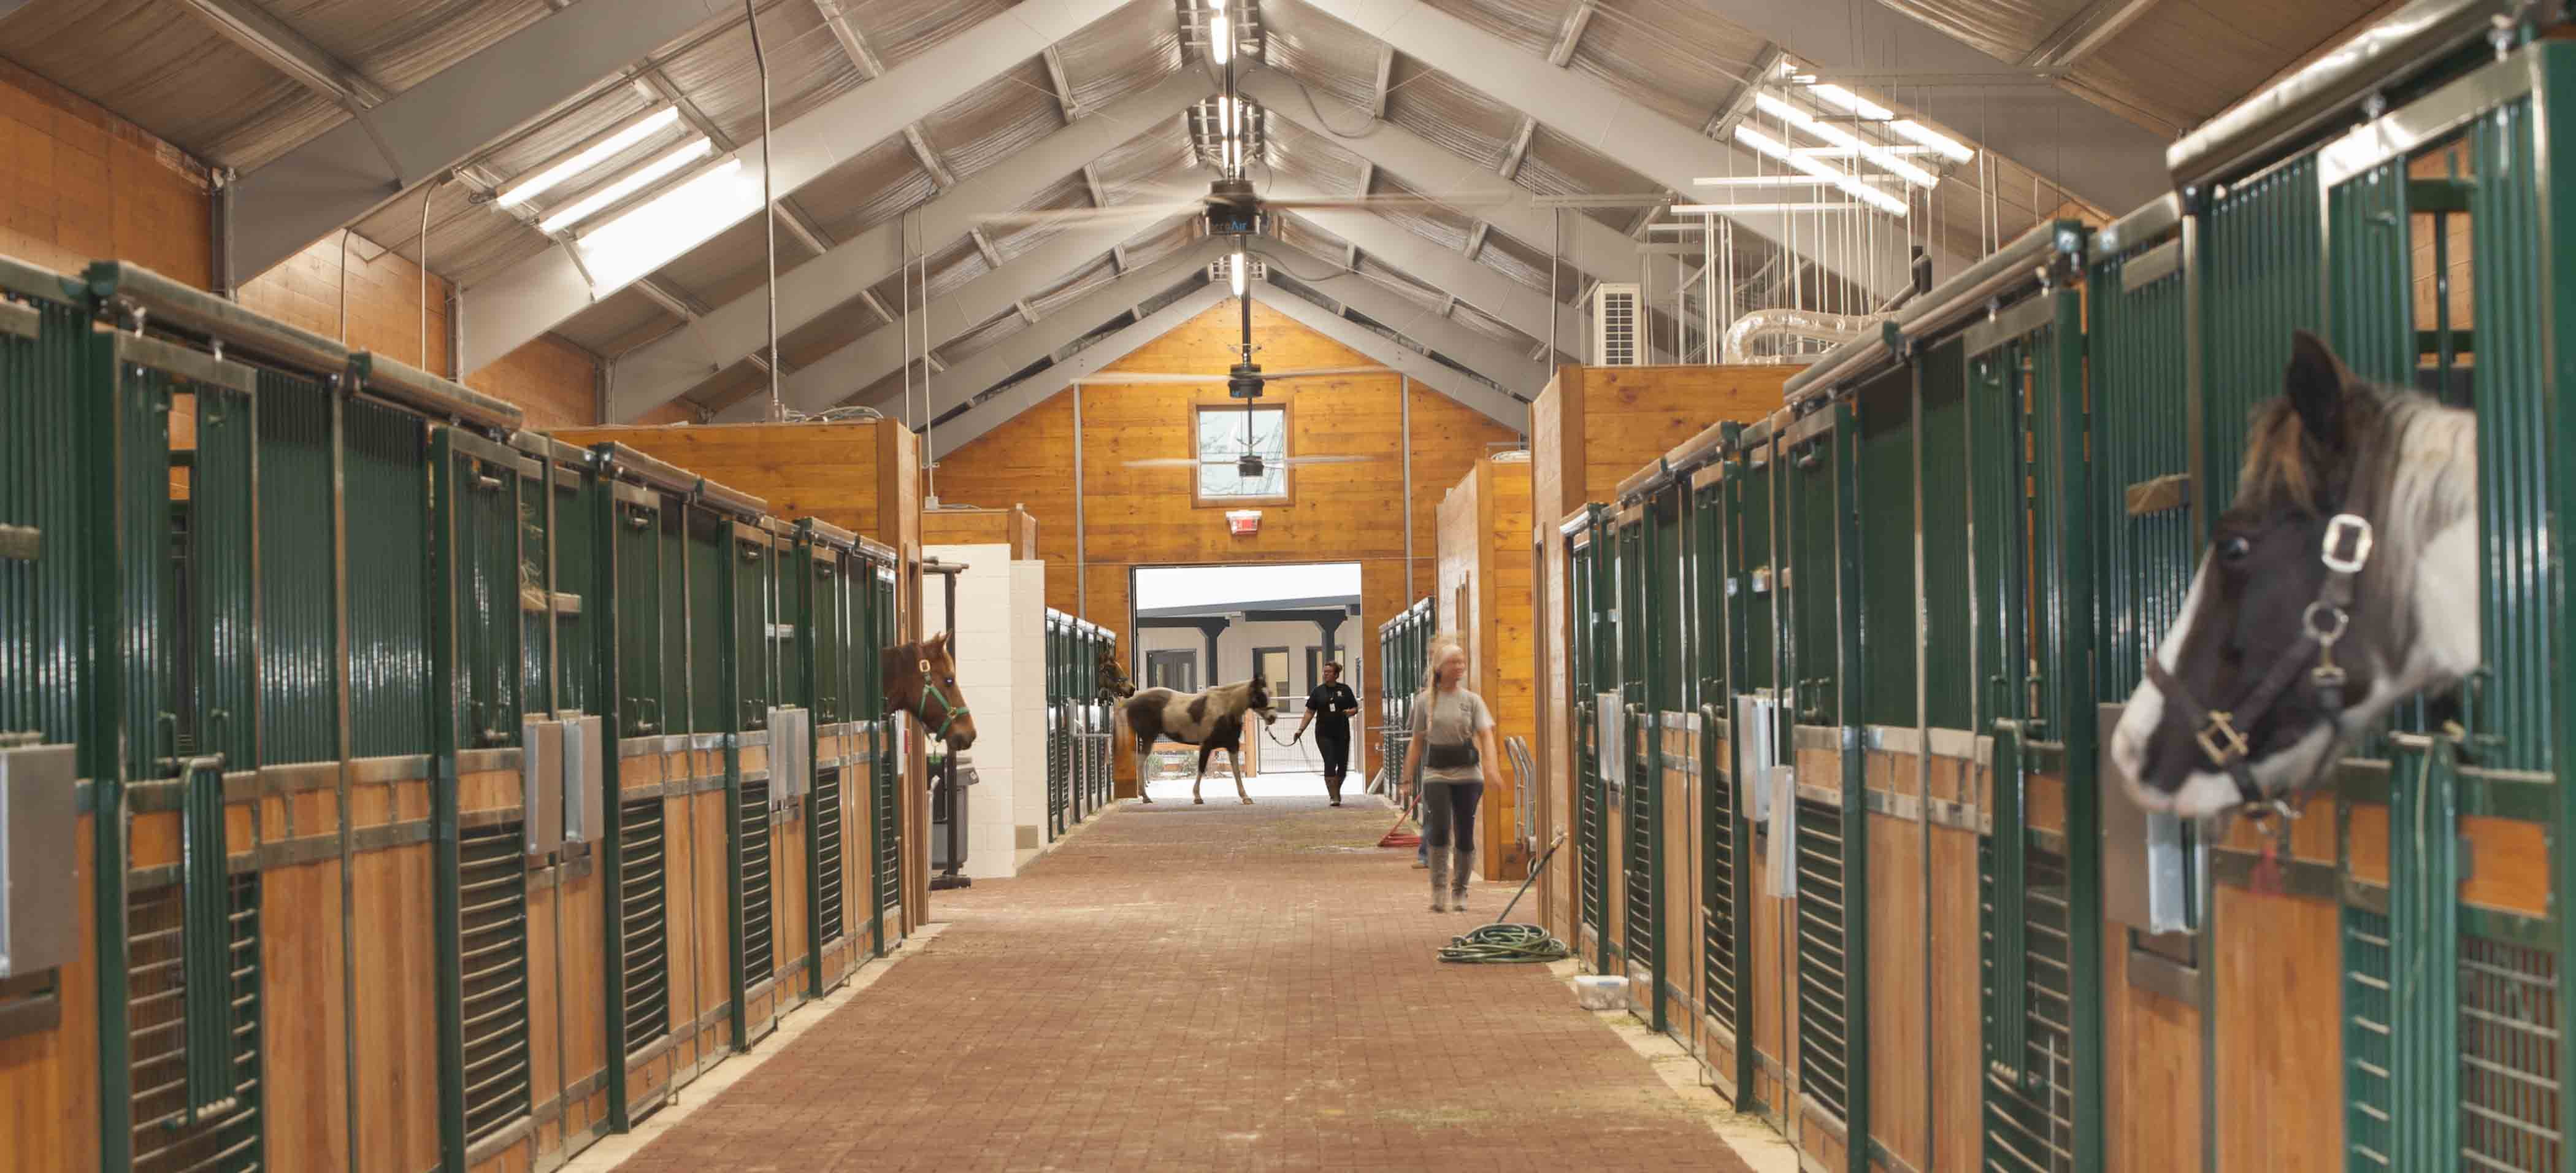 Jackson & Ryan Architects Houston SPCA Campus for All Animals 12 Equine and Farm Animals Center